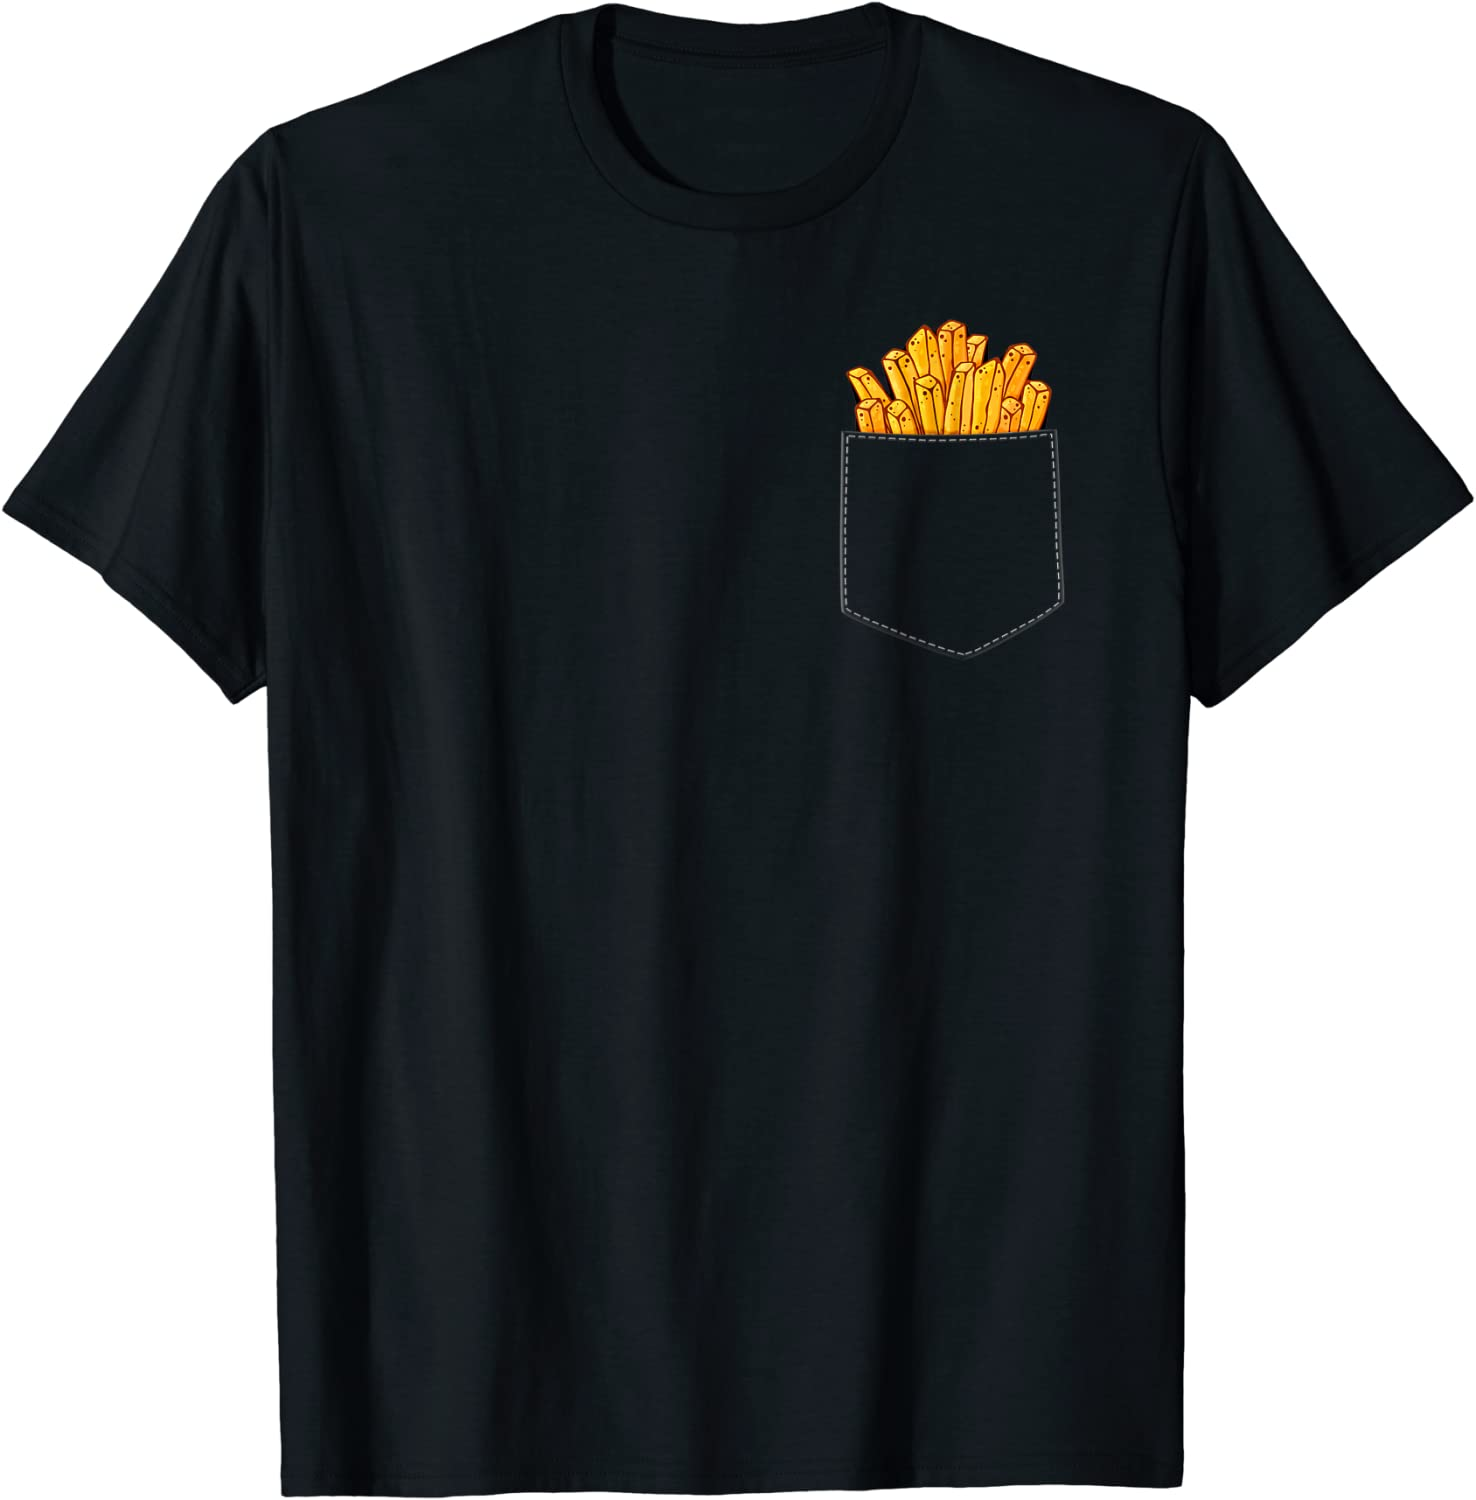 French Fries In My Pocket Funny Gift For Junk Food Fan T-Shirt